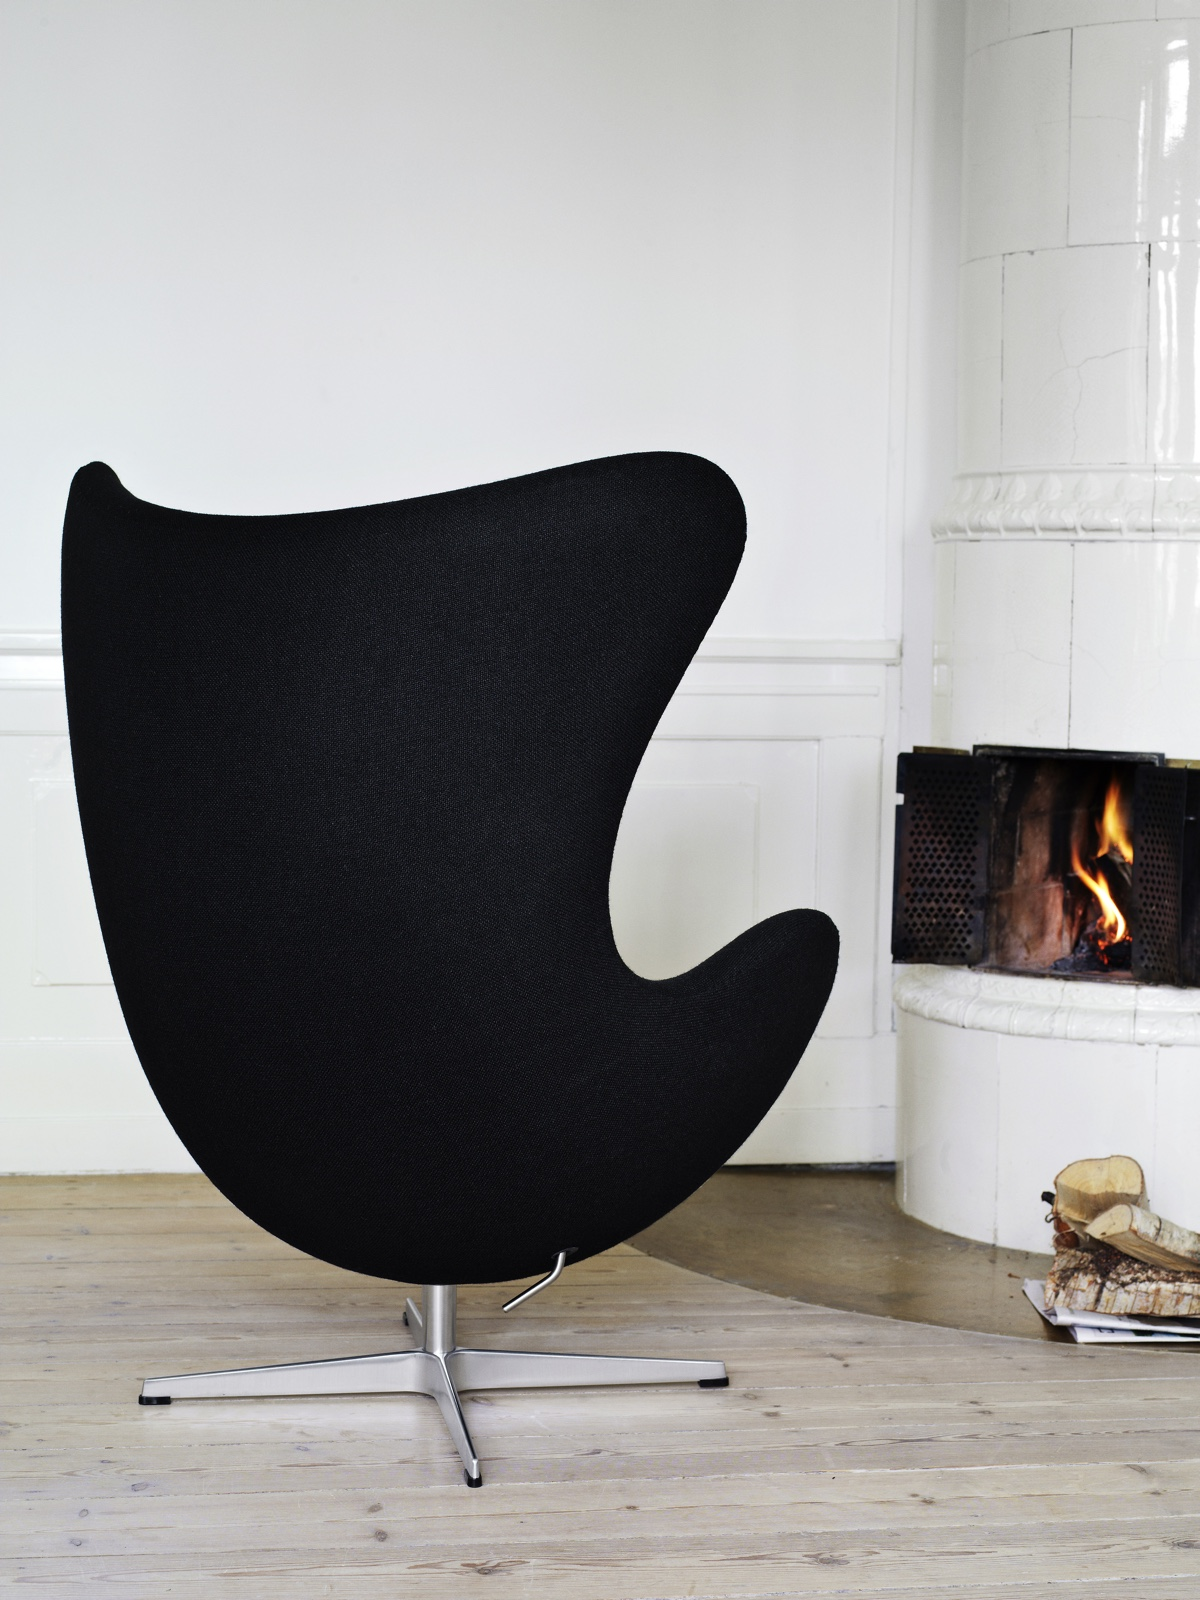 12 Iconic Chair Designs from the 1950s